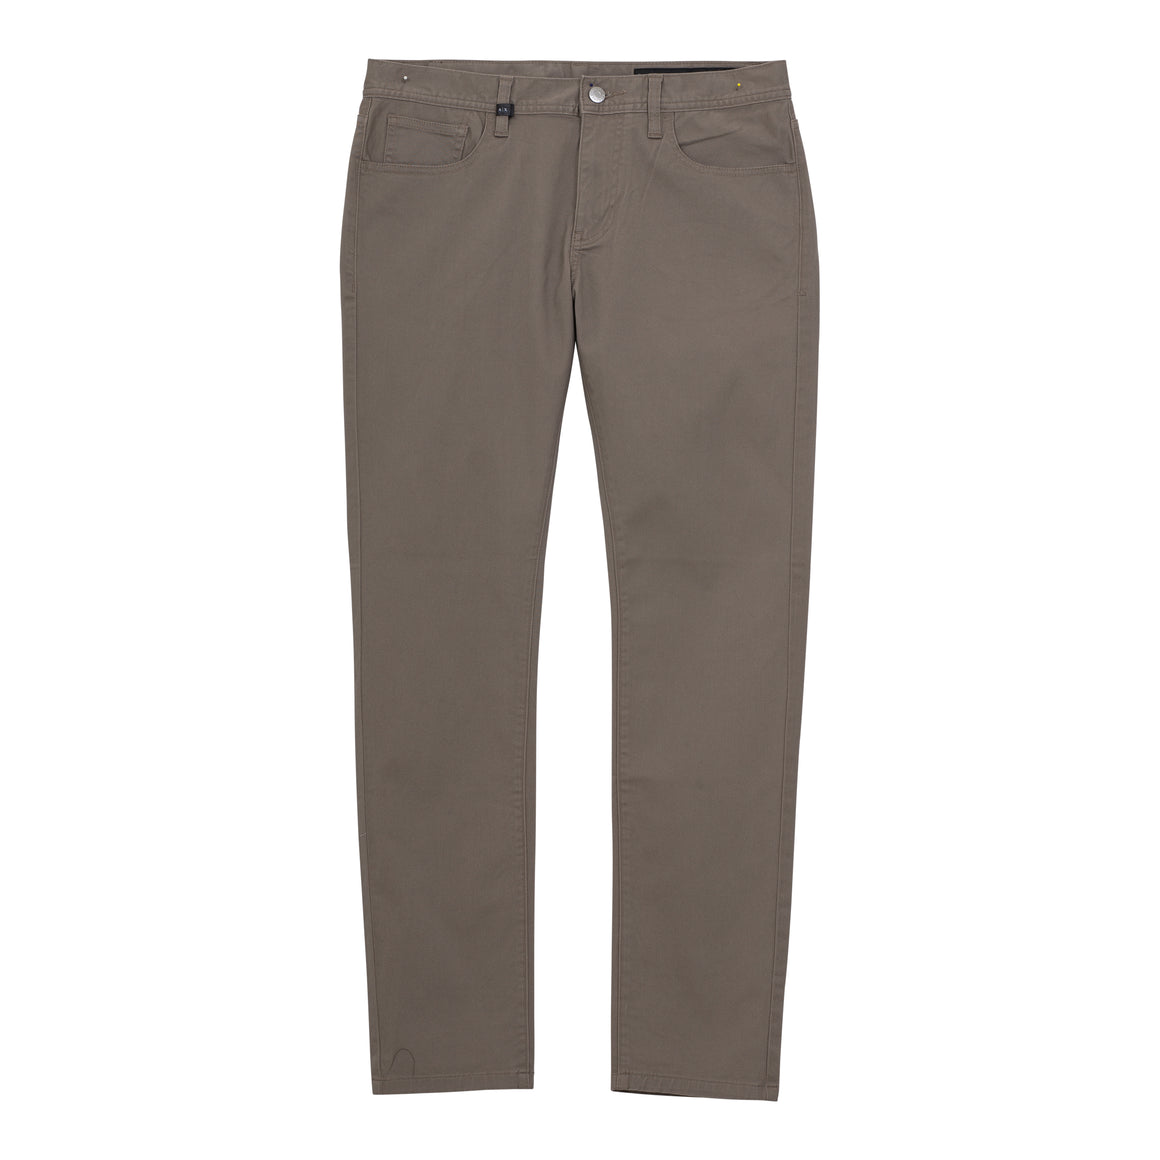 5 Pocket Slim Fit Trouser for Men in Stone